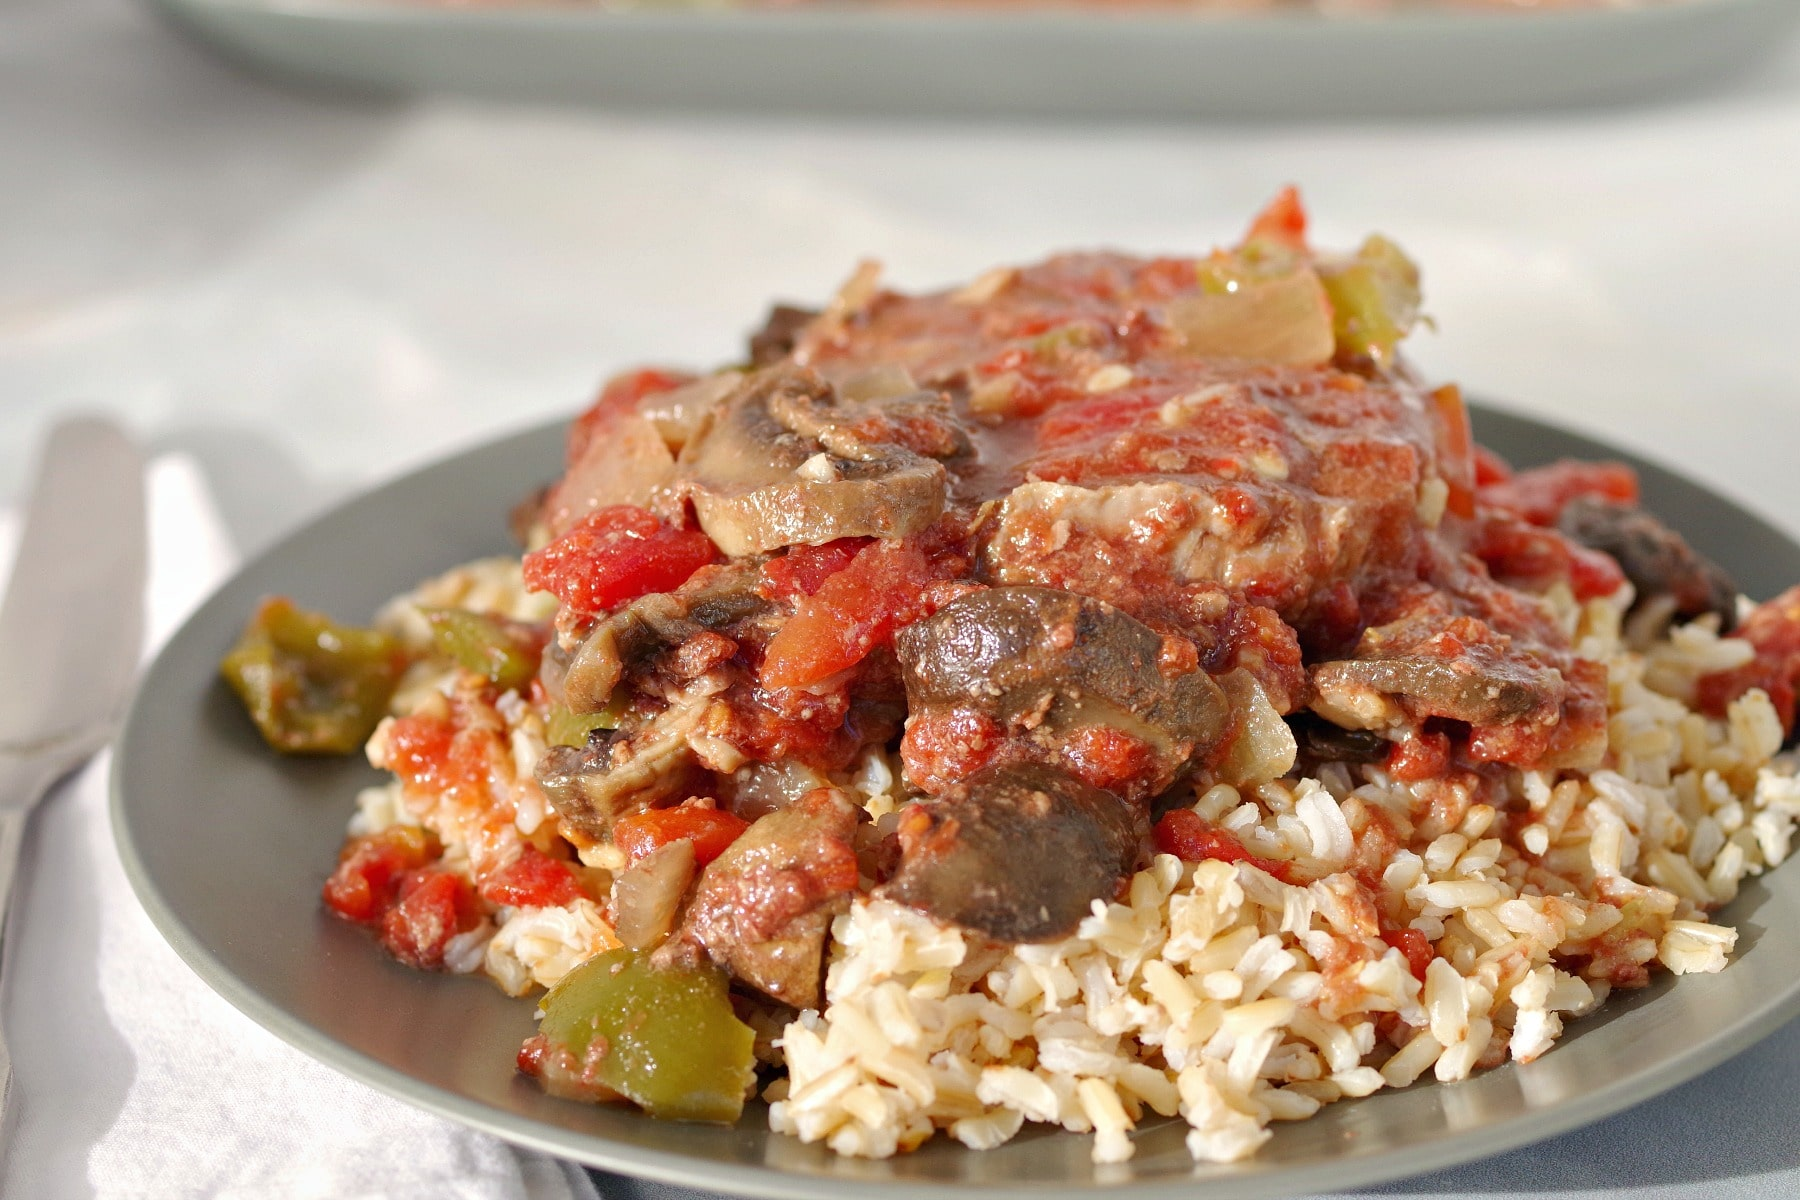 Slow Cooker Swiss Steak on Rice (on green plate)